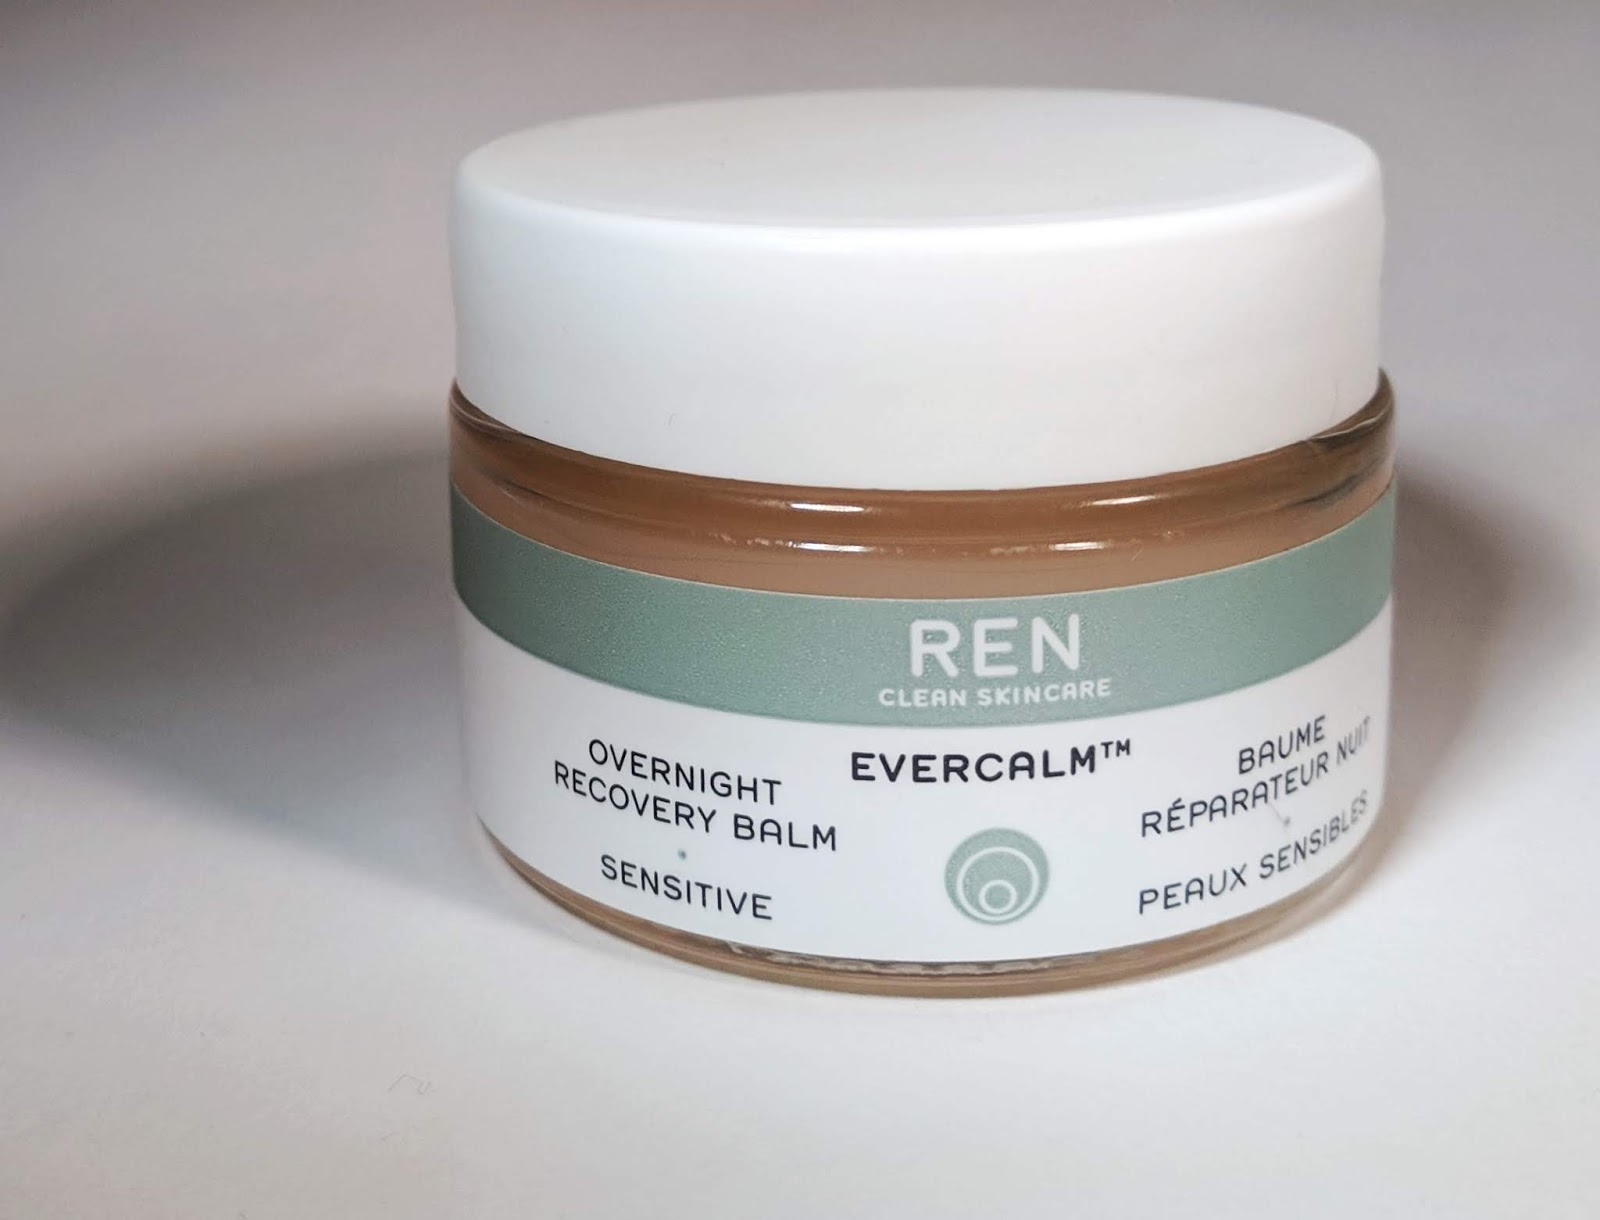 Image of a small jar of REN Overnight Recovery Balm